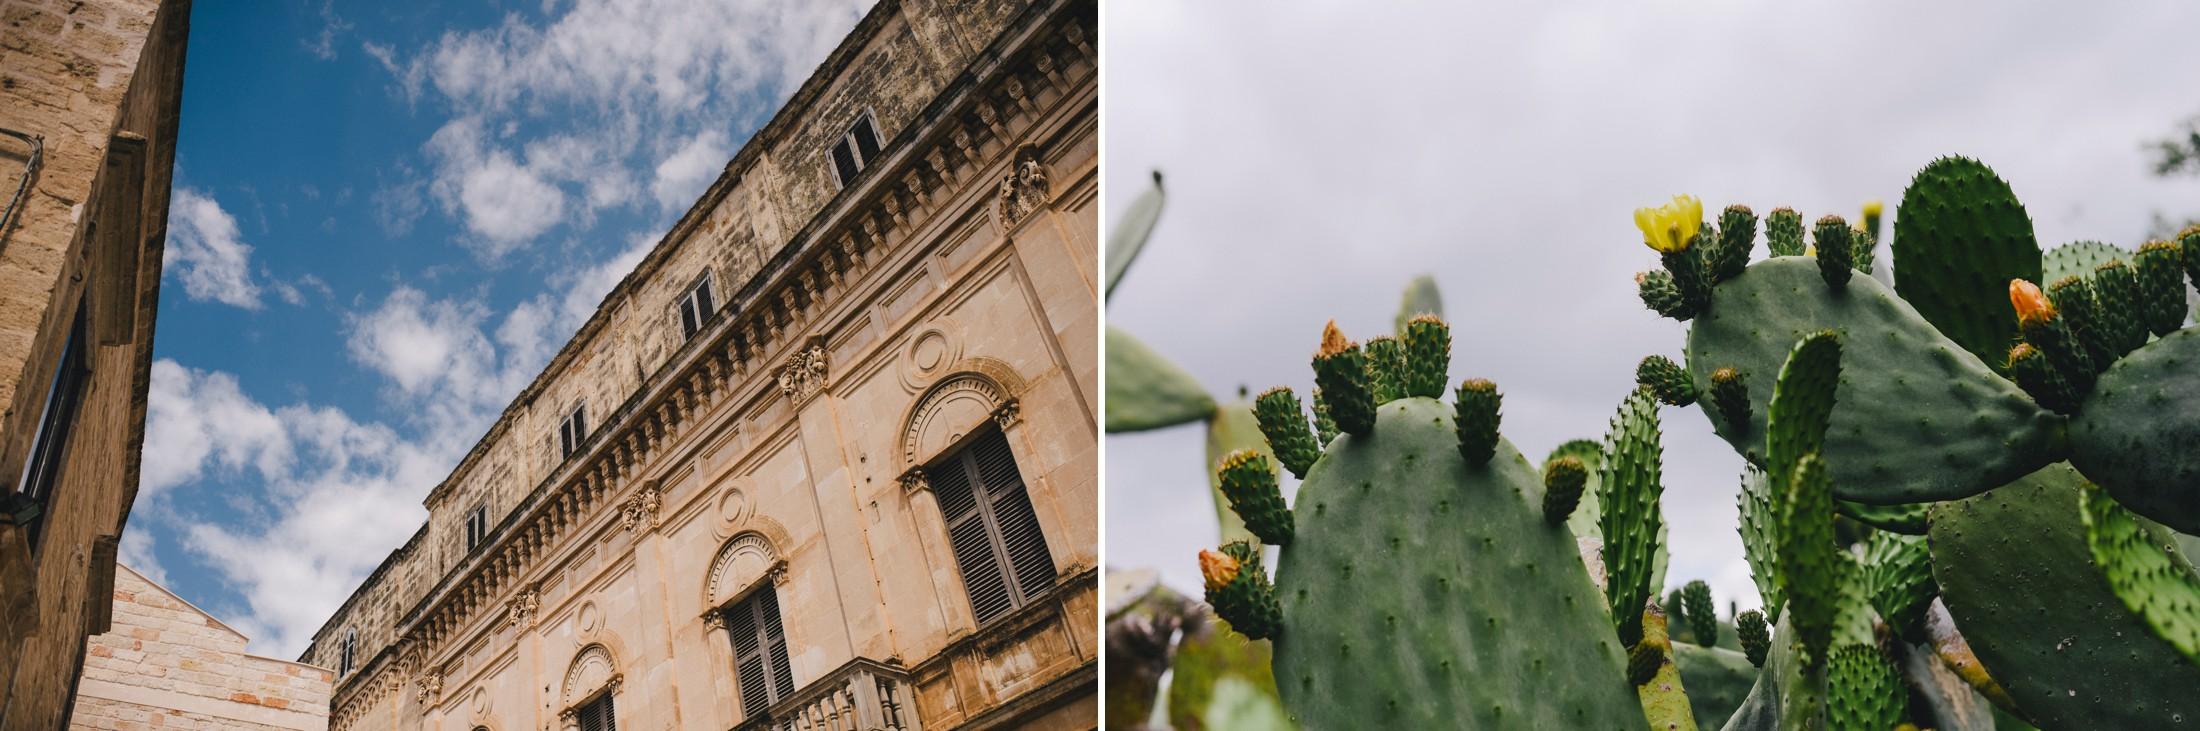 collage puglia cactus and buildings